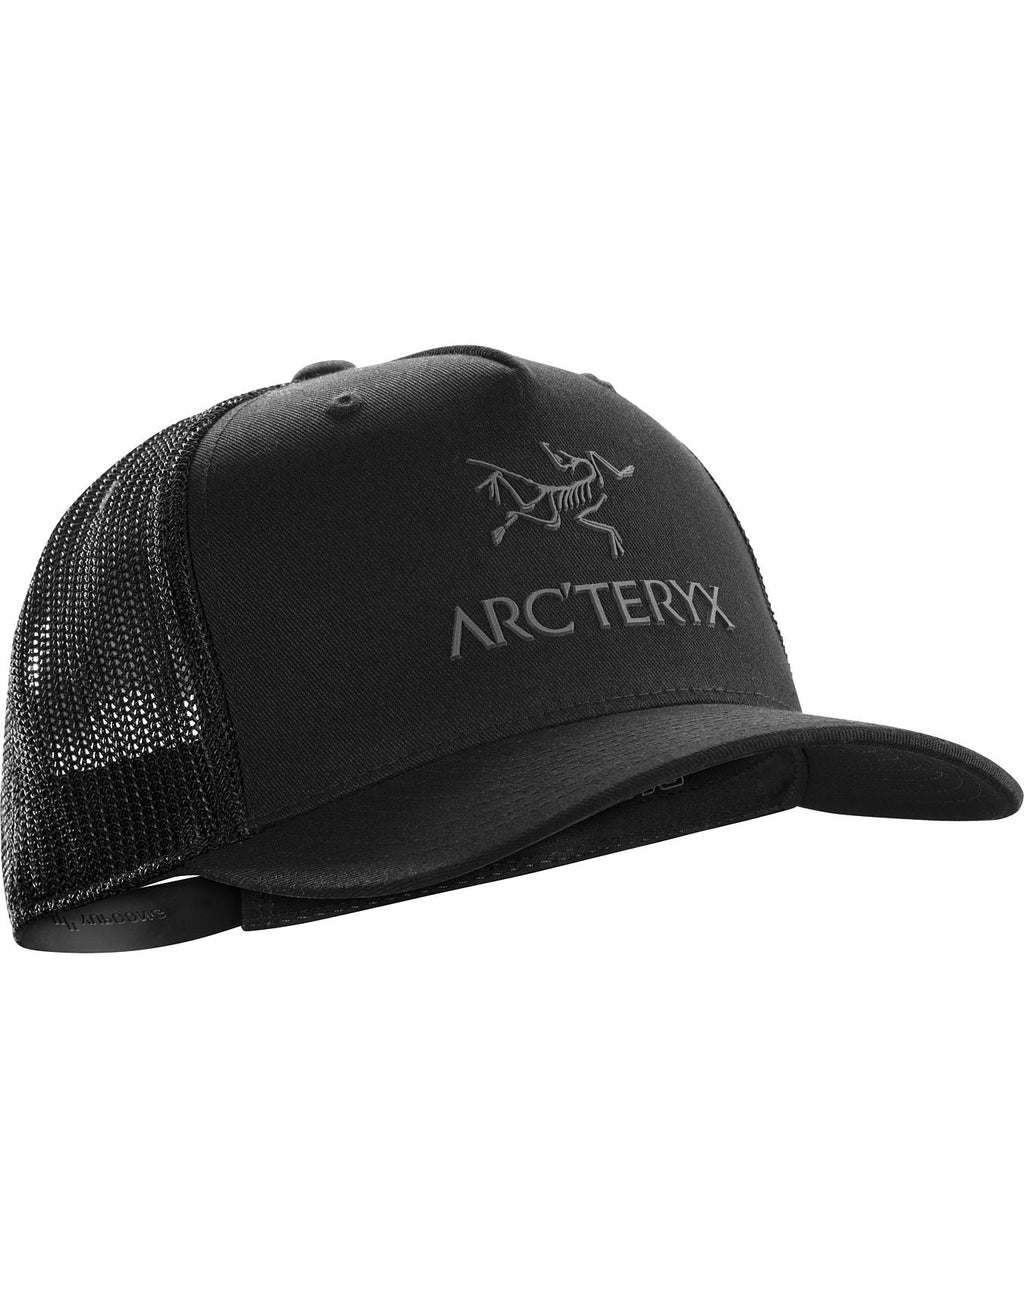 Arc'Teryx Logo Trucker Hat / Black - Trailside Outfitter